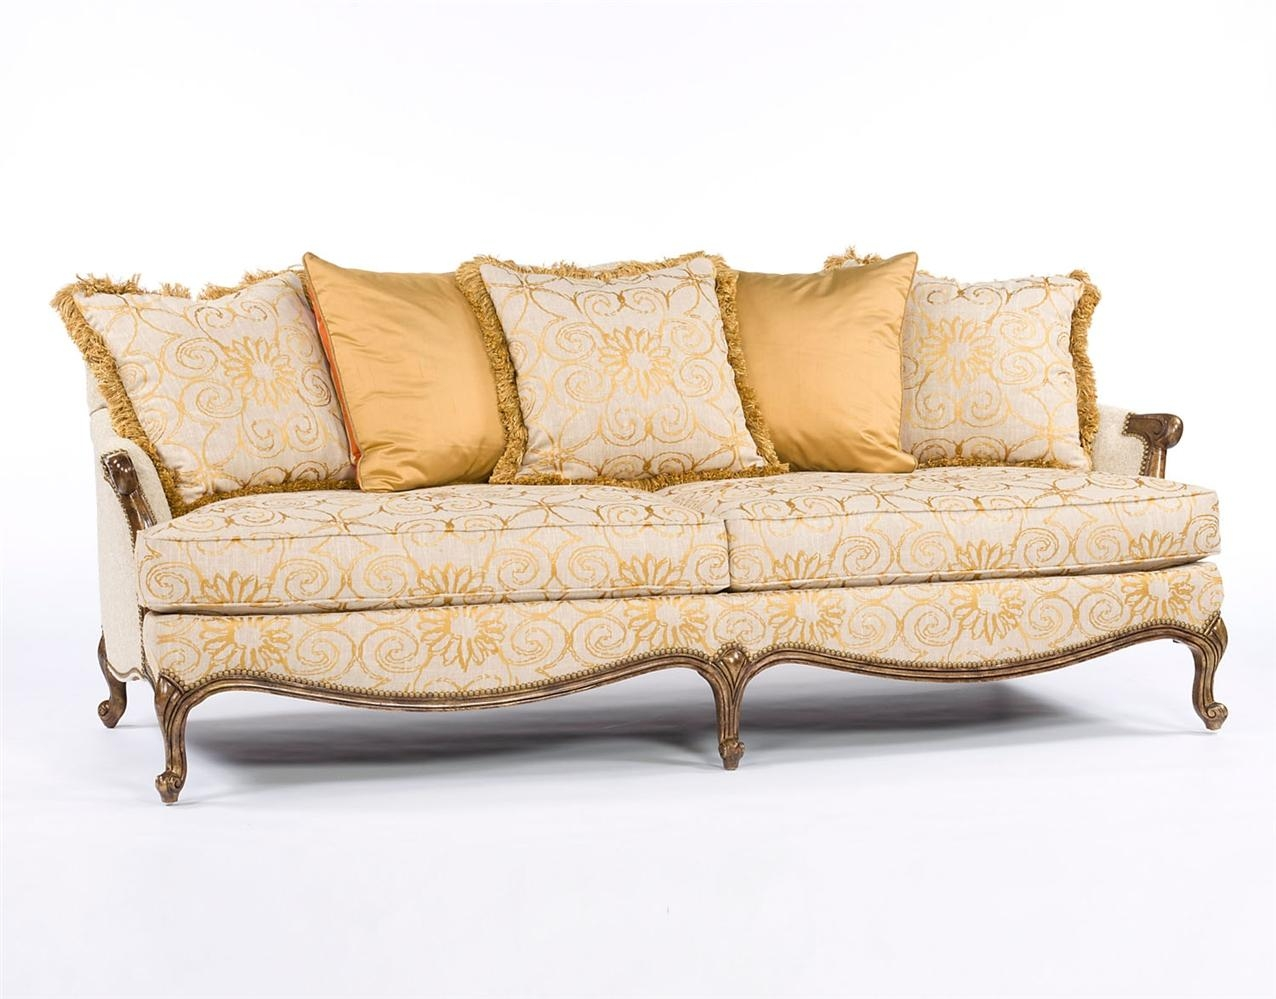 French Design Furniture Enchanting French Furniture Styles With Regard To French Style Sofa (Image 5 of 20)